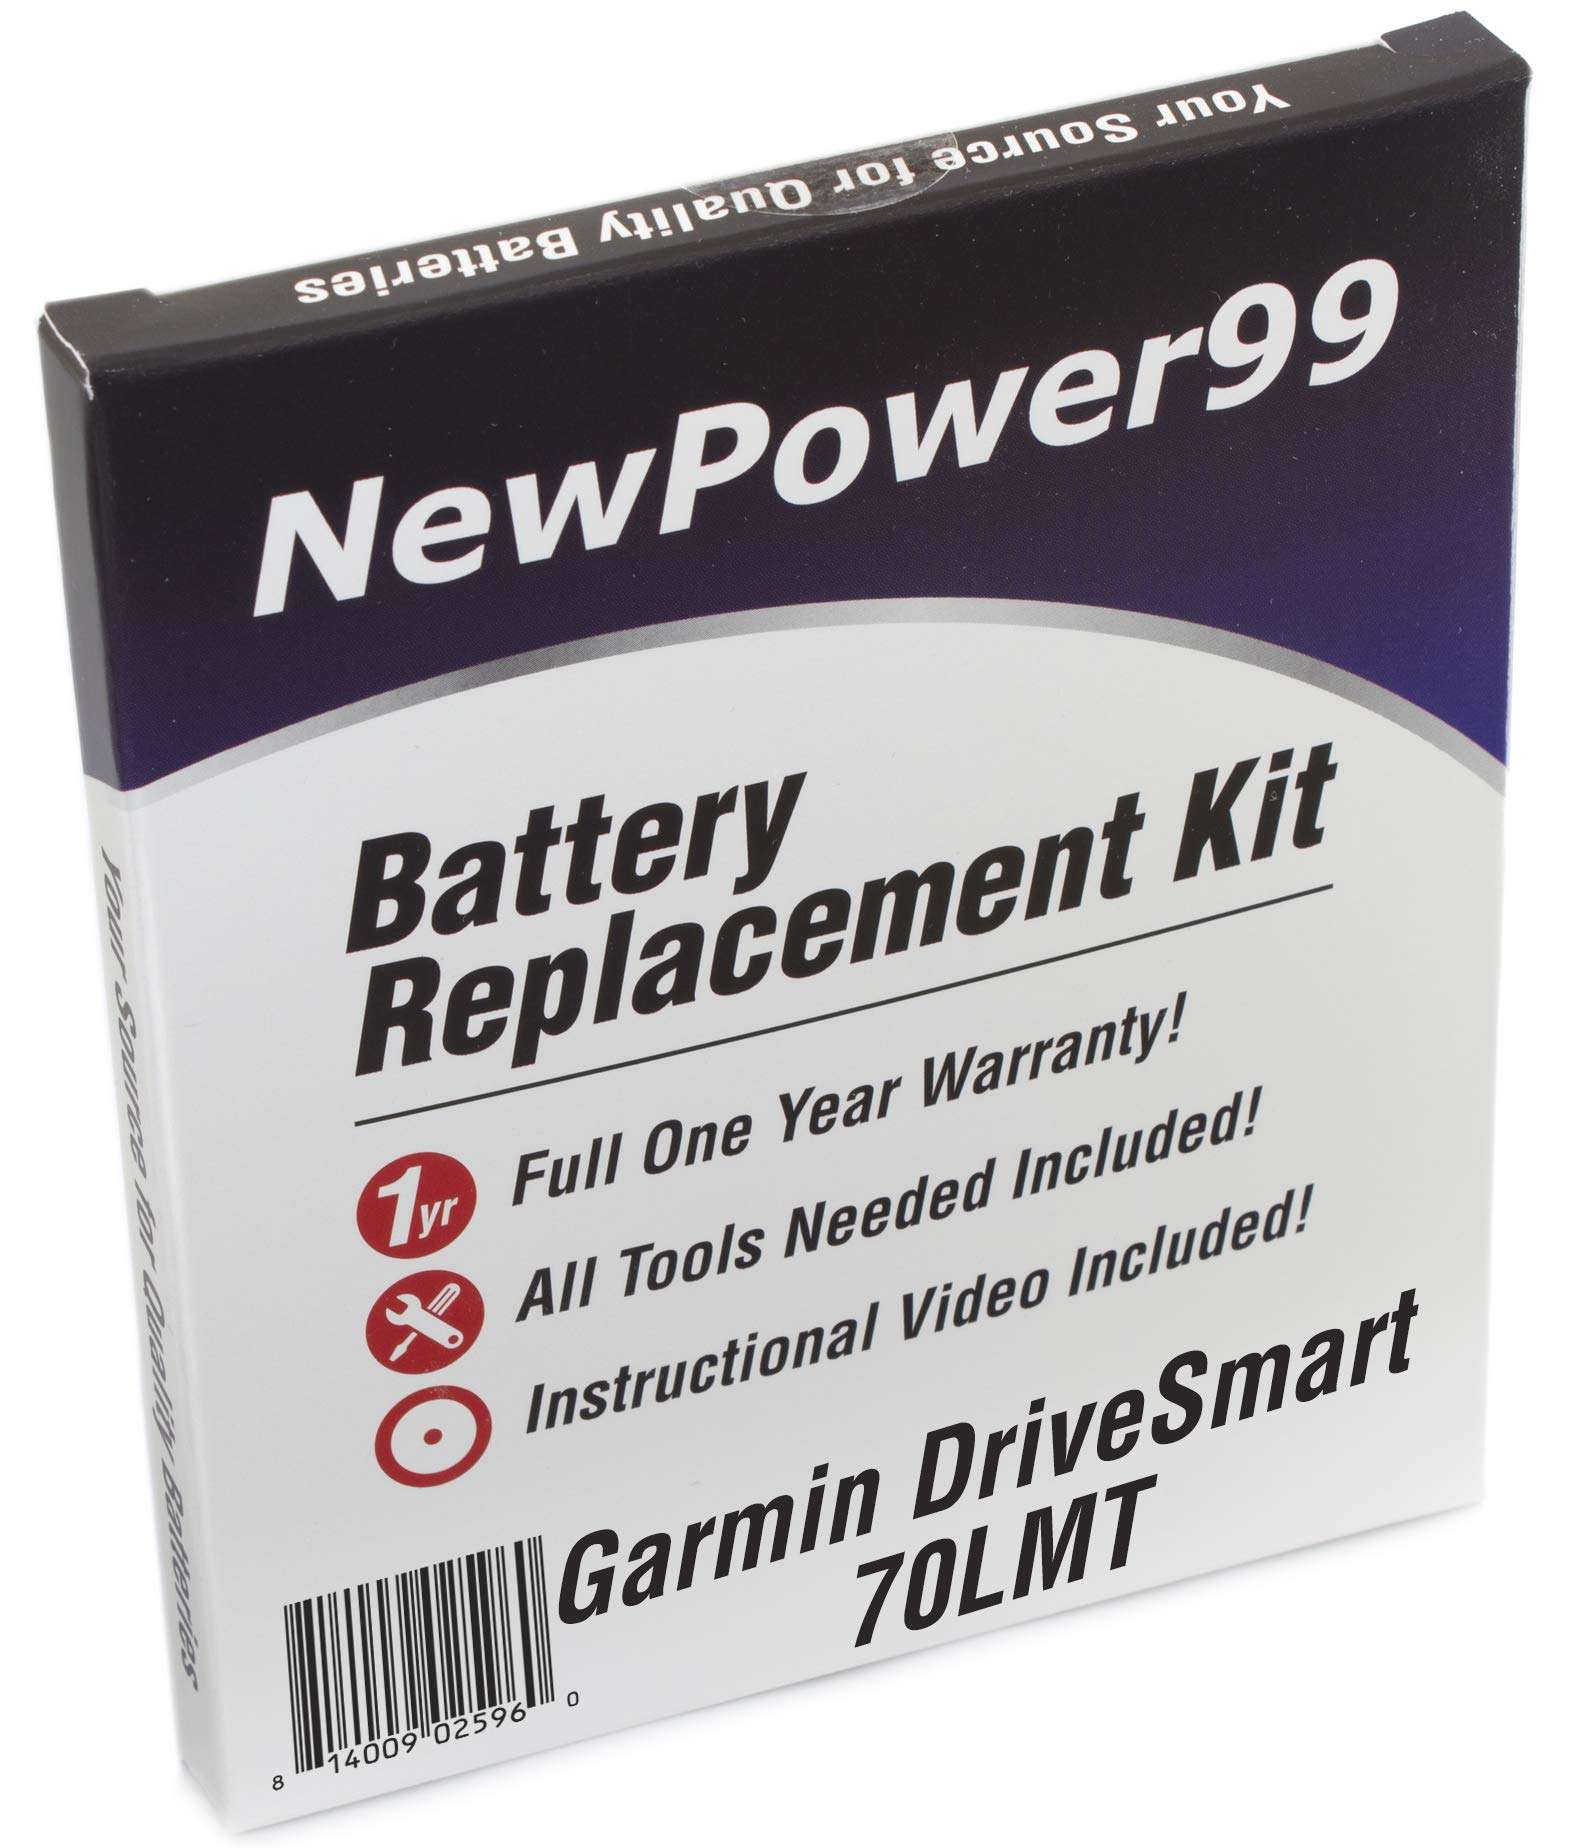 Battery Replacement Kit for Garmin DriveSmart 70LMT with Installation Video, Tools, and Extended Life Battery.